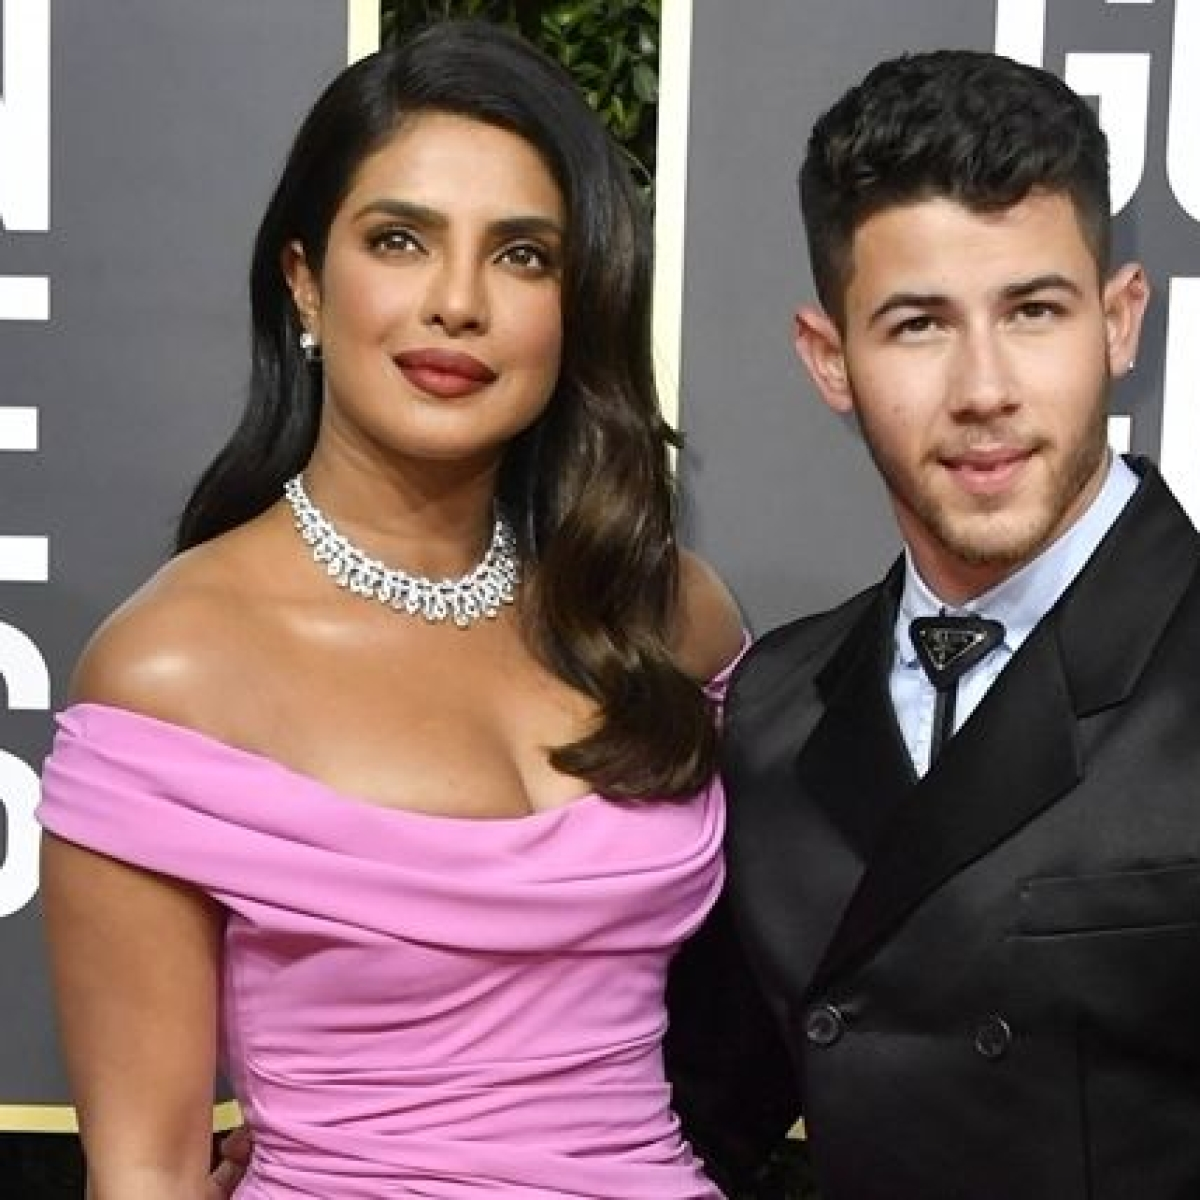 Priyanka Chopra, Nick Jonas raise nearly Rs 4 crore to help India amid COVID-19 crisis, express gratitude to fans